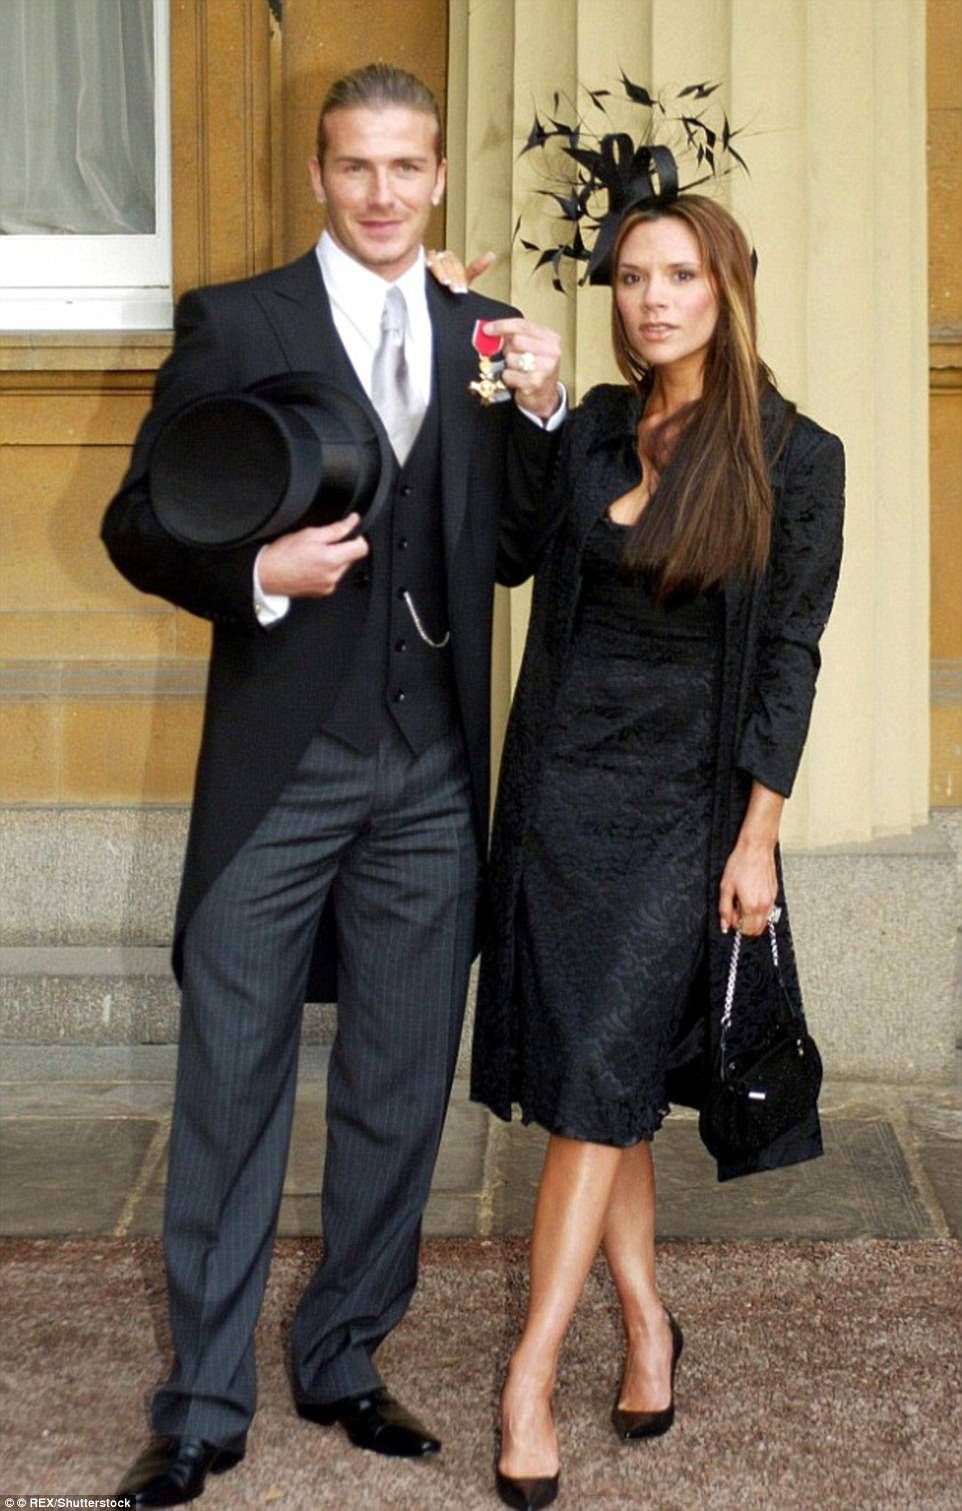 Victoria Beckham Receives Obe From The Duke Of Cambridge David And Victoria Beckham Victoria Beckham Style Victoria Beckham